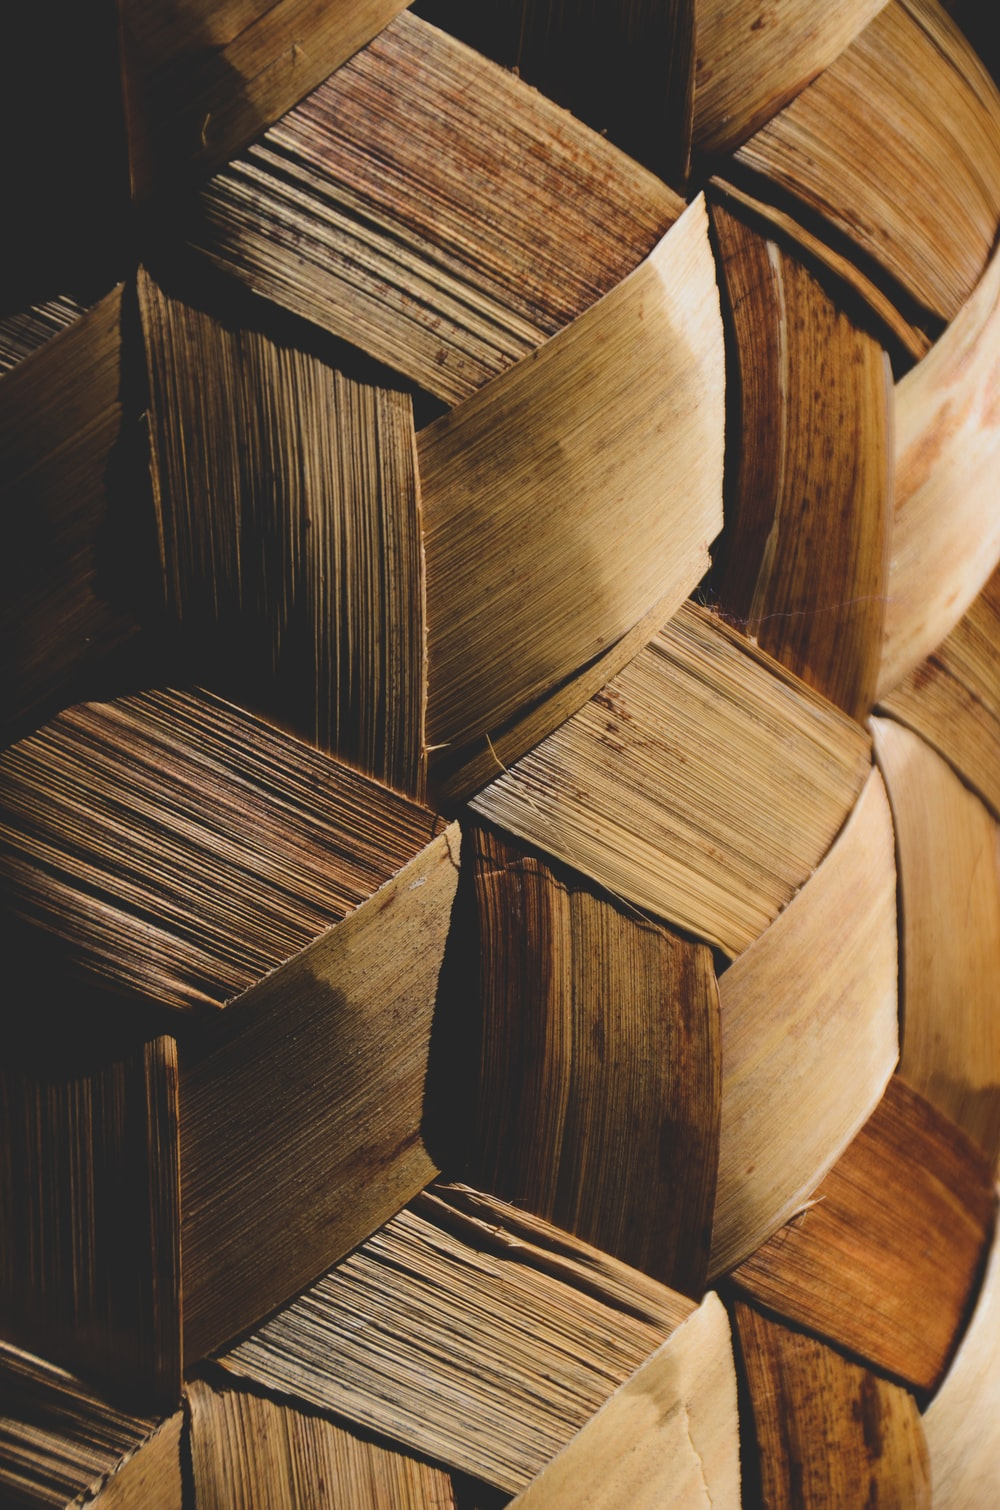 brown wooden blocks in close up photography